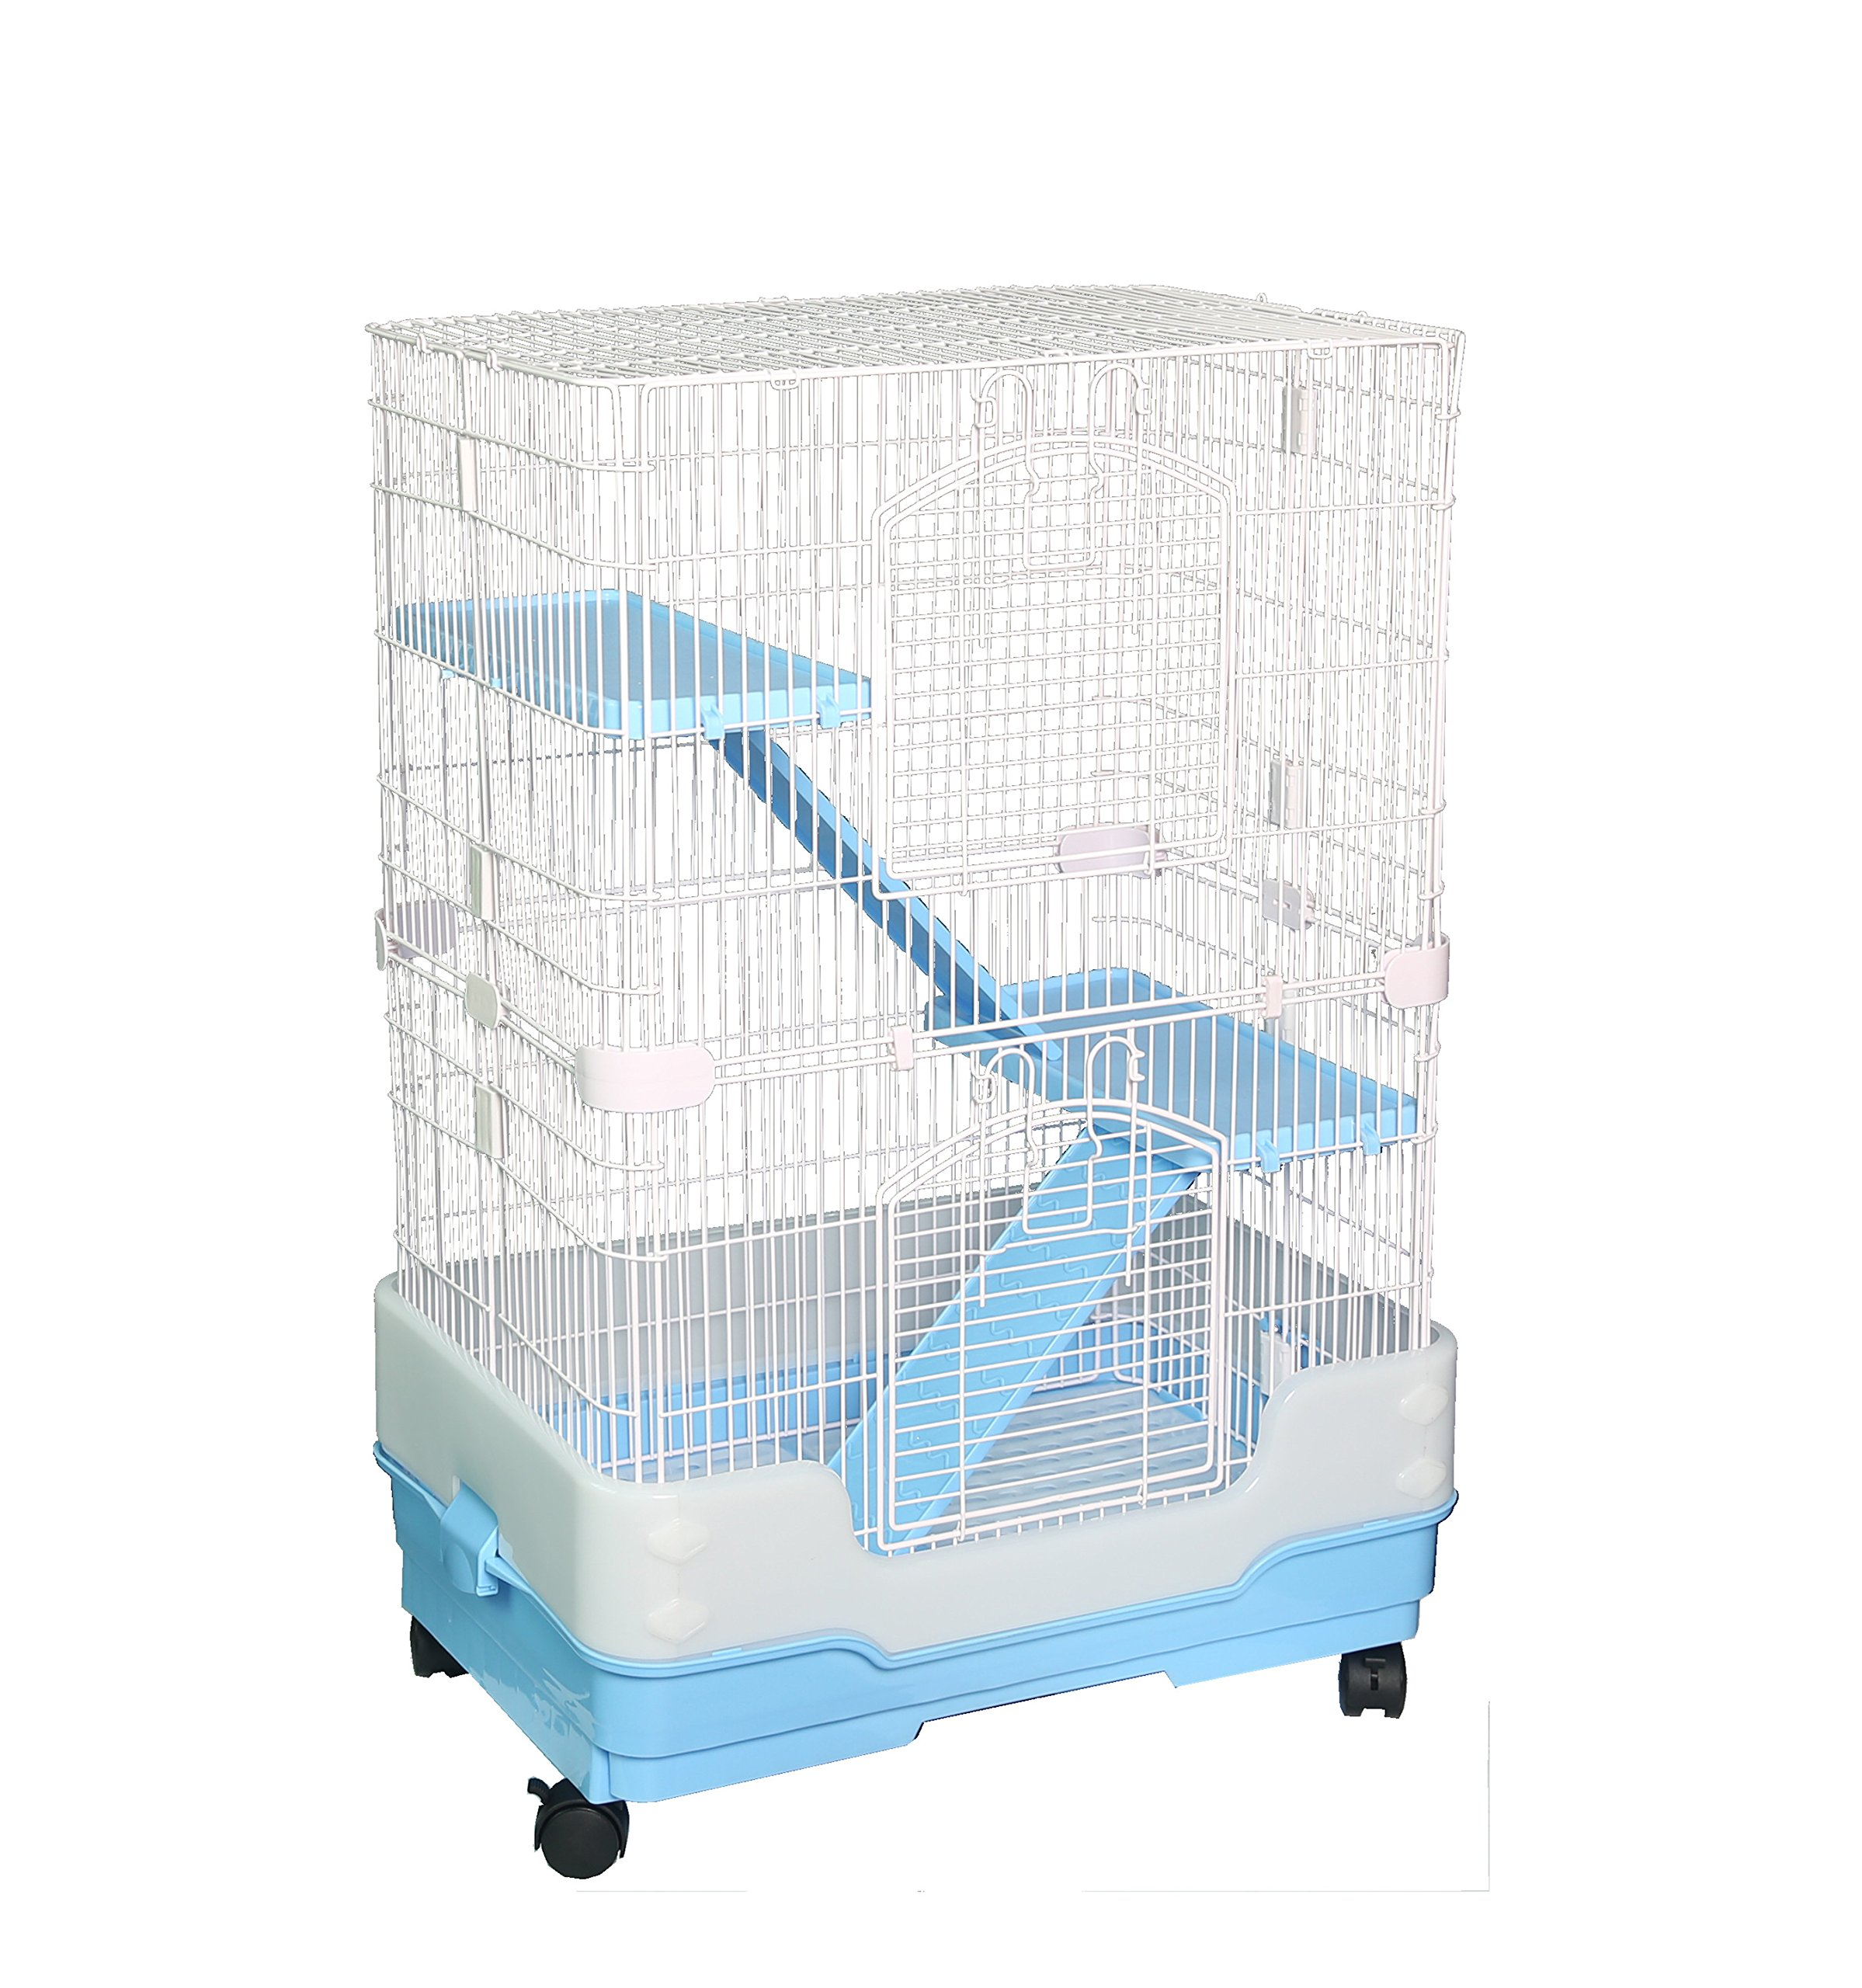 Homey Pet 3 Tiers Chinchilla Hamster Rat Ferret Cage with Sleeping Platform, Pull Out Tray, Urine Guard and Lockable Casters, Blue, L26 x W17 x H38